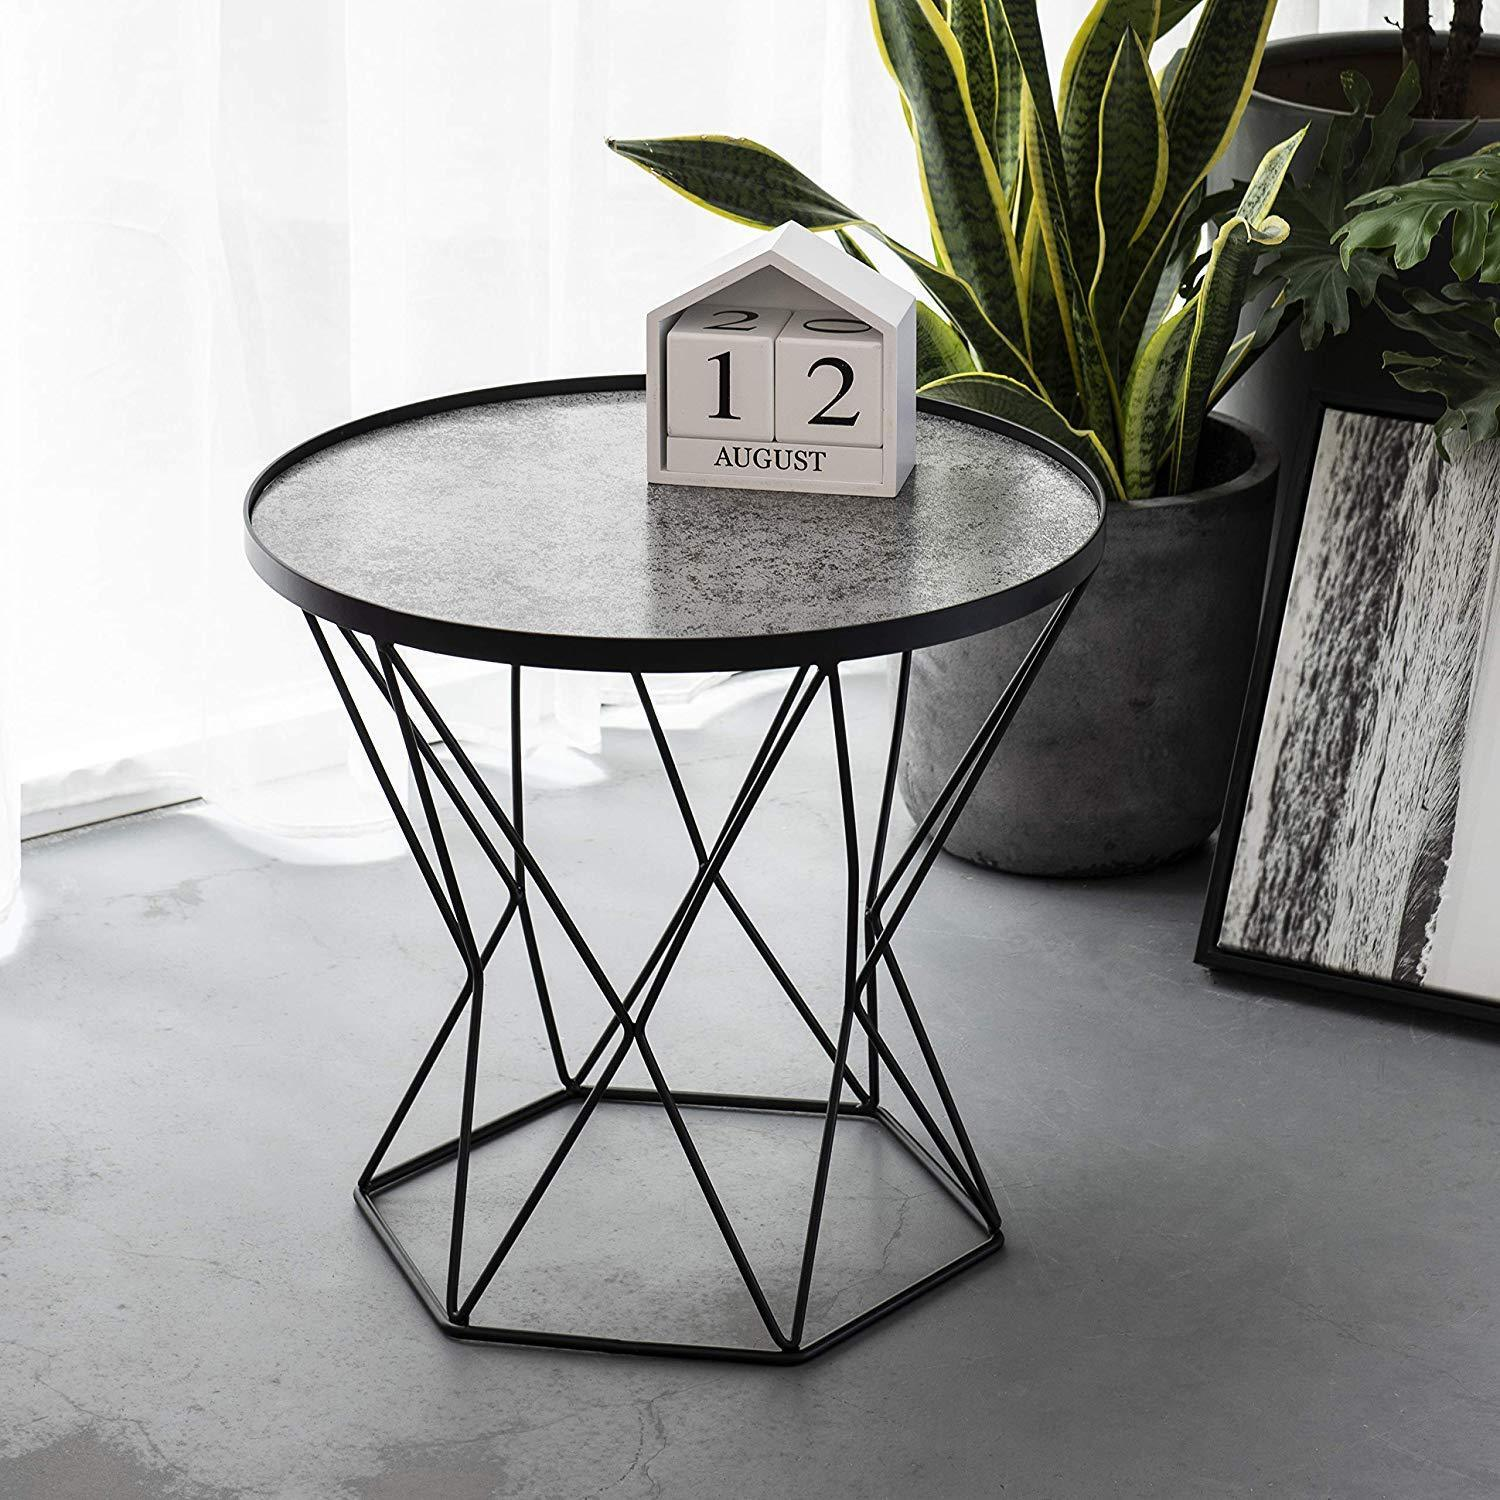 art leon small round end table modern glass top metal frame triangle accent the stylish talbe just right for you which can meet most contemporary decor style this gorgerous placed